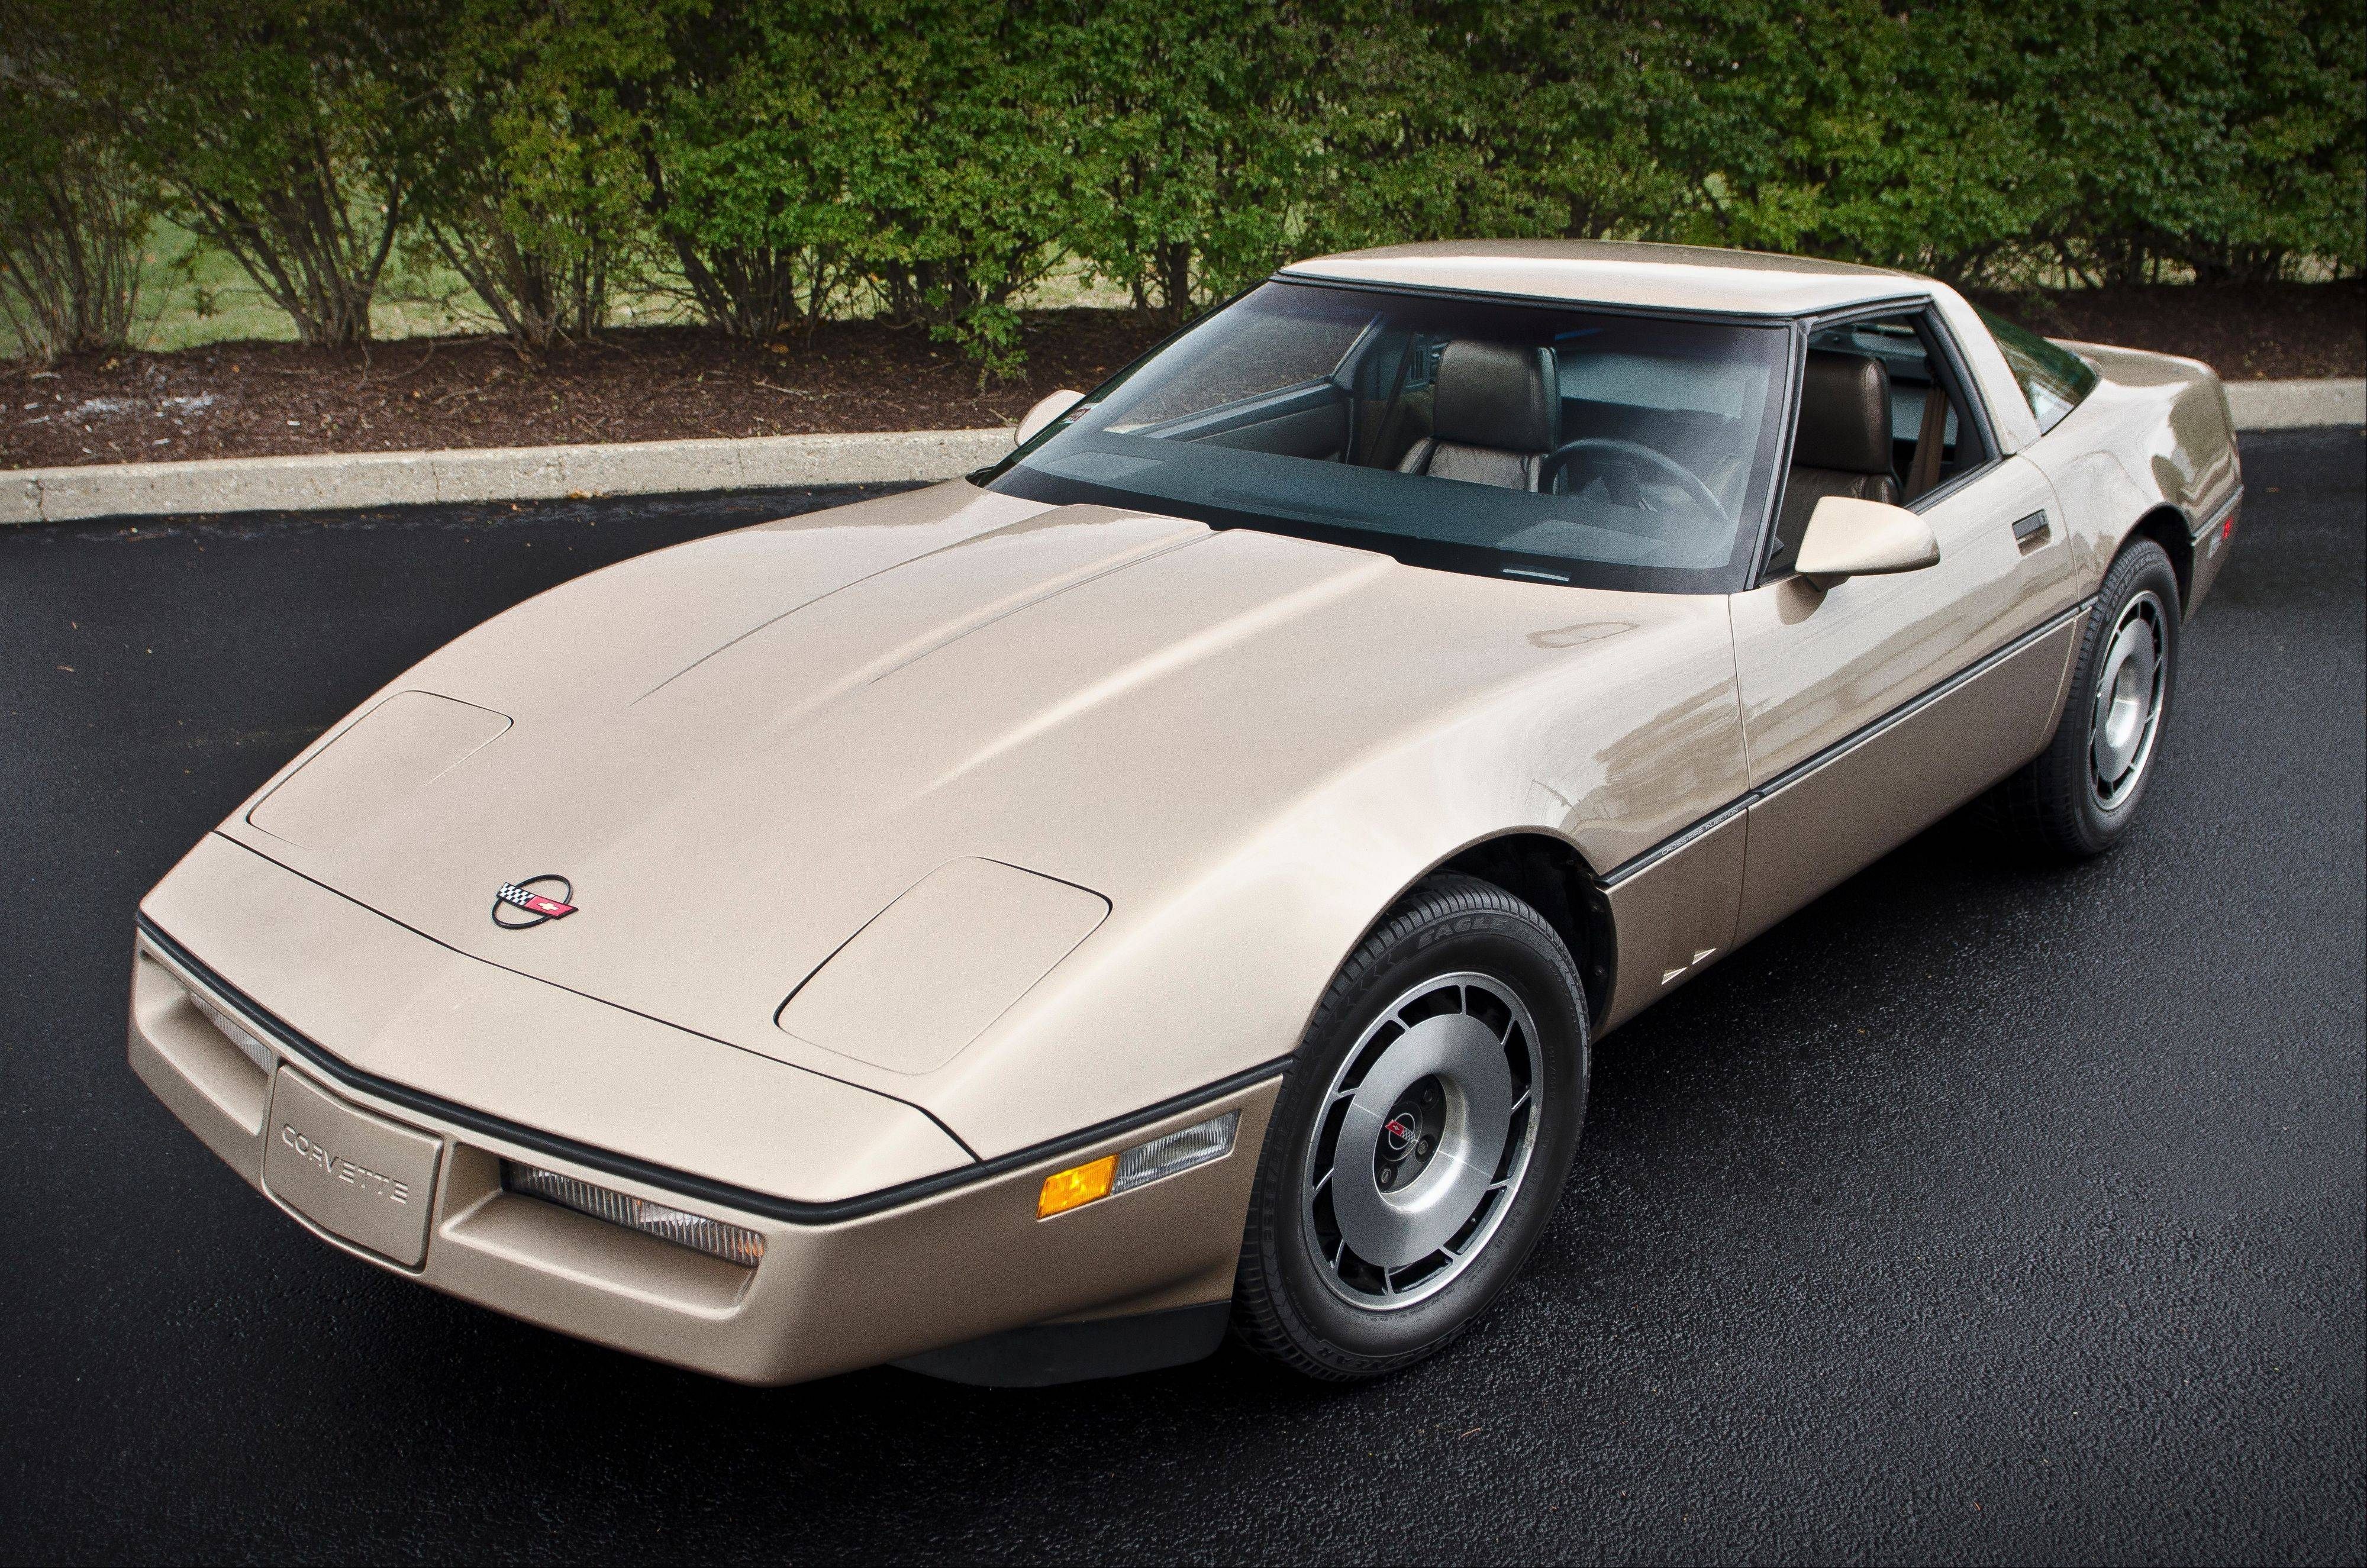 Tom Spera's 1984 Chevrolet Corvette has never seen snow or ice.